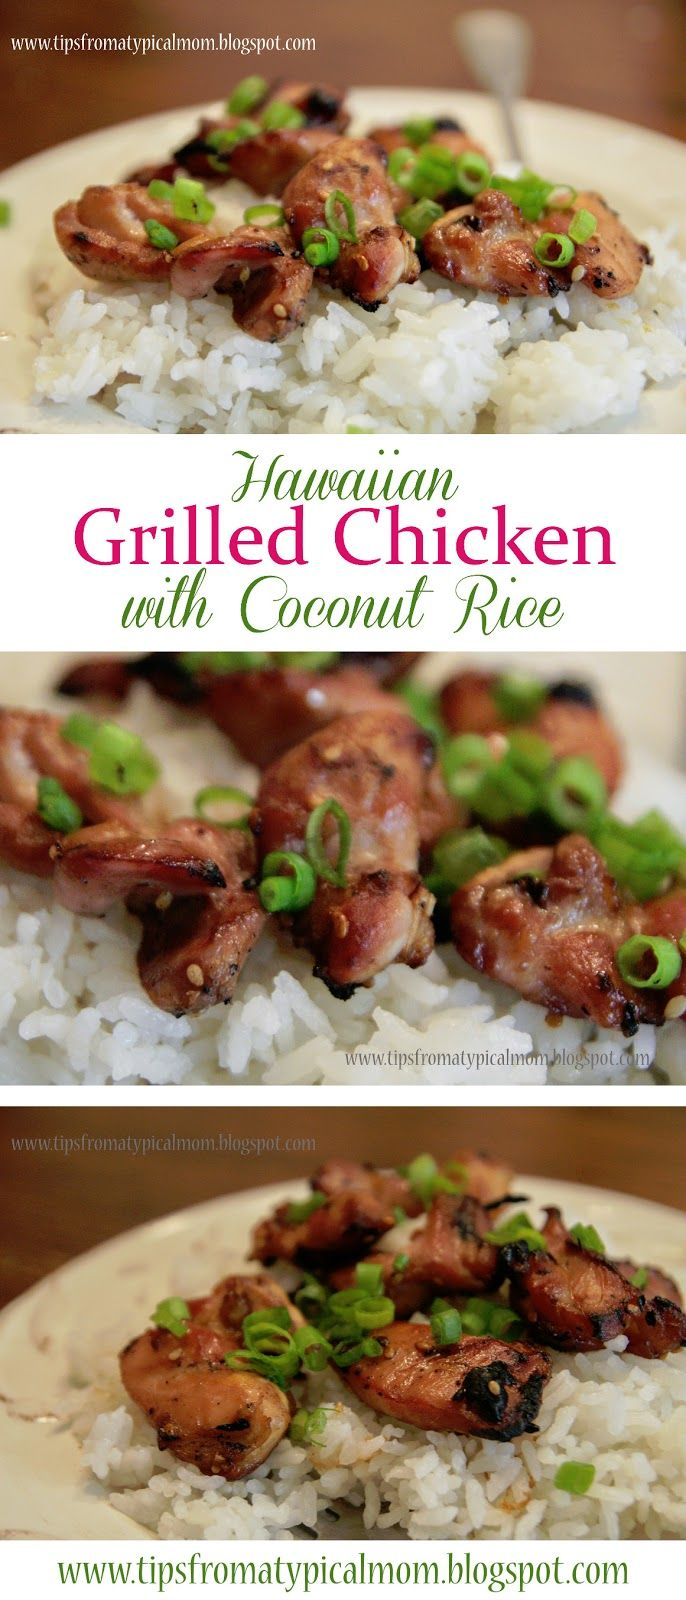 Grilled Hawaiian Chicken with Coconut Rice -a hit with the whole family. Don't skip the coconut rice!